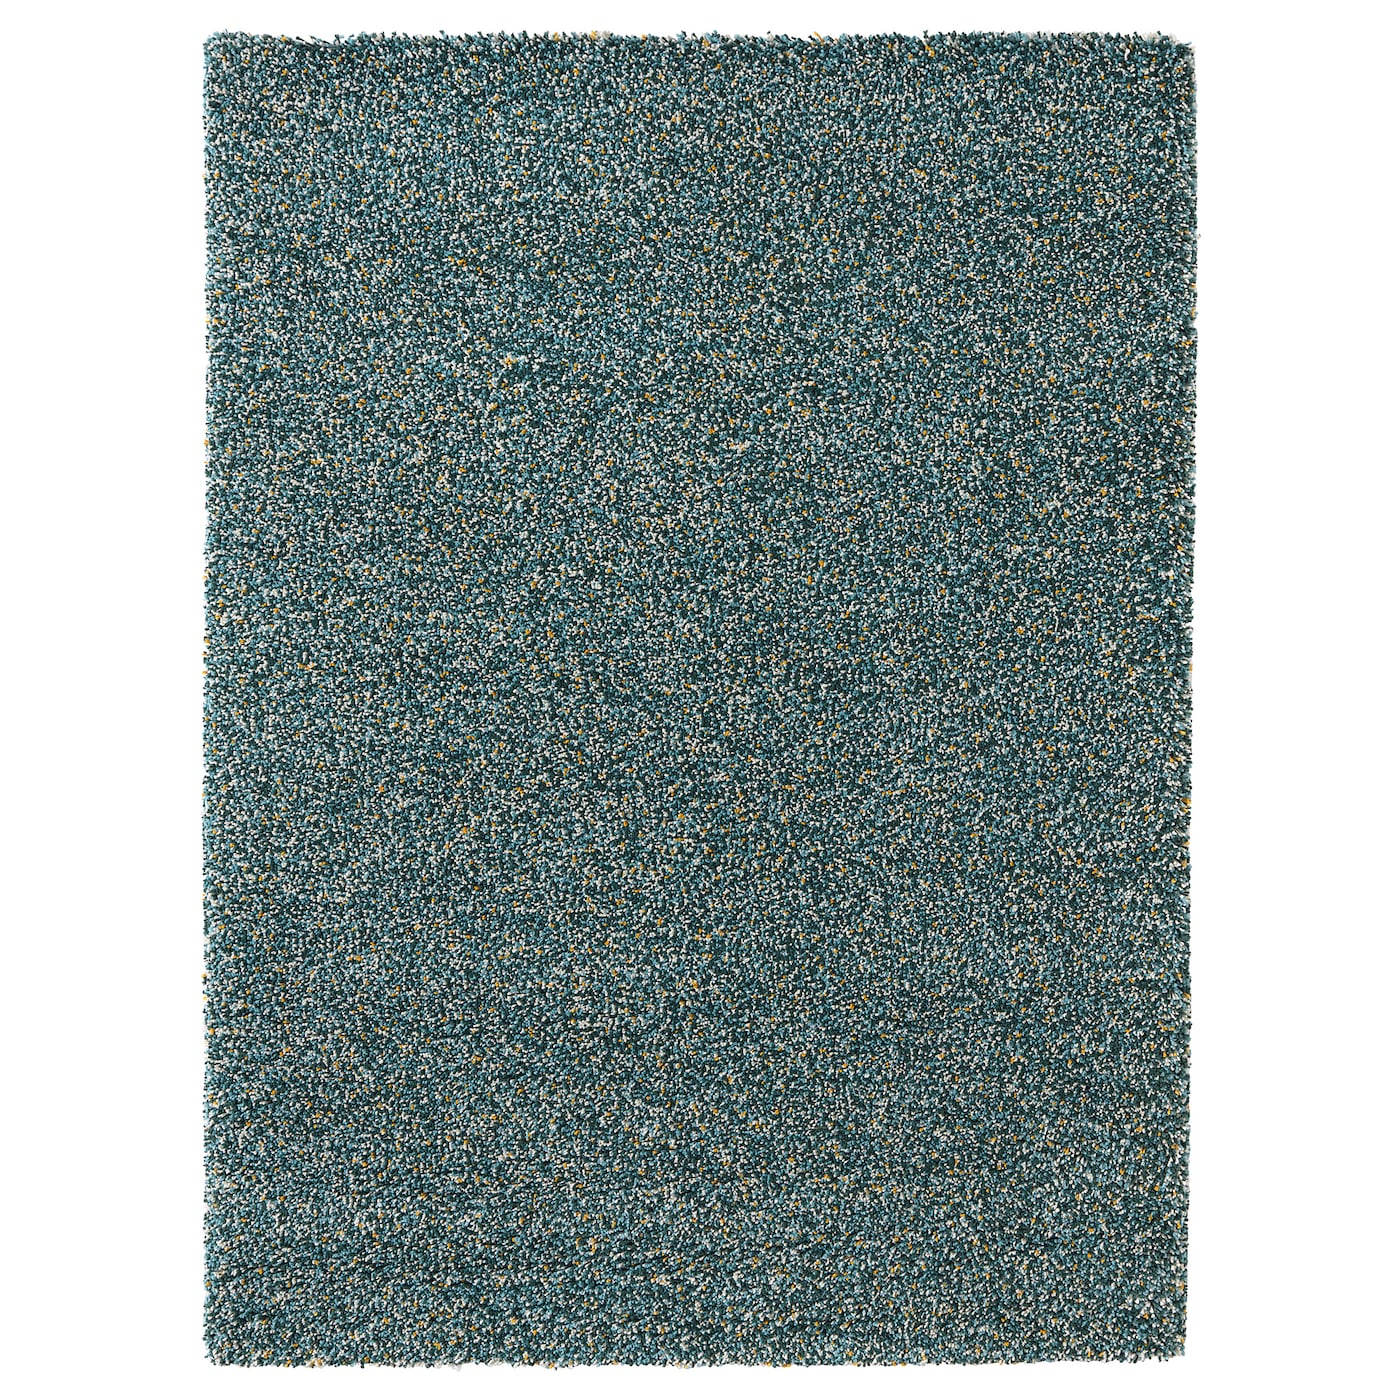 vindum tapis poils hauts bleu vert 170 x 230 cm ikea. Black Bedroom Furniture Sets. Home Design Ideas